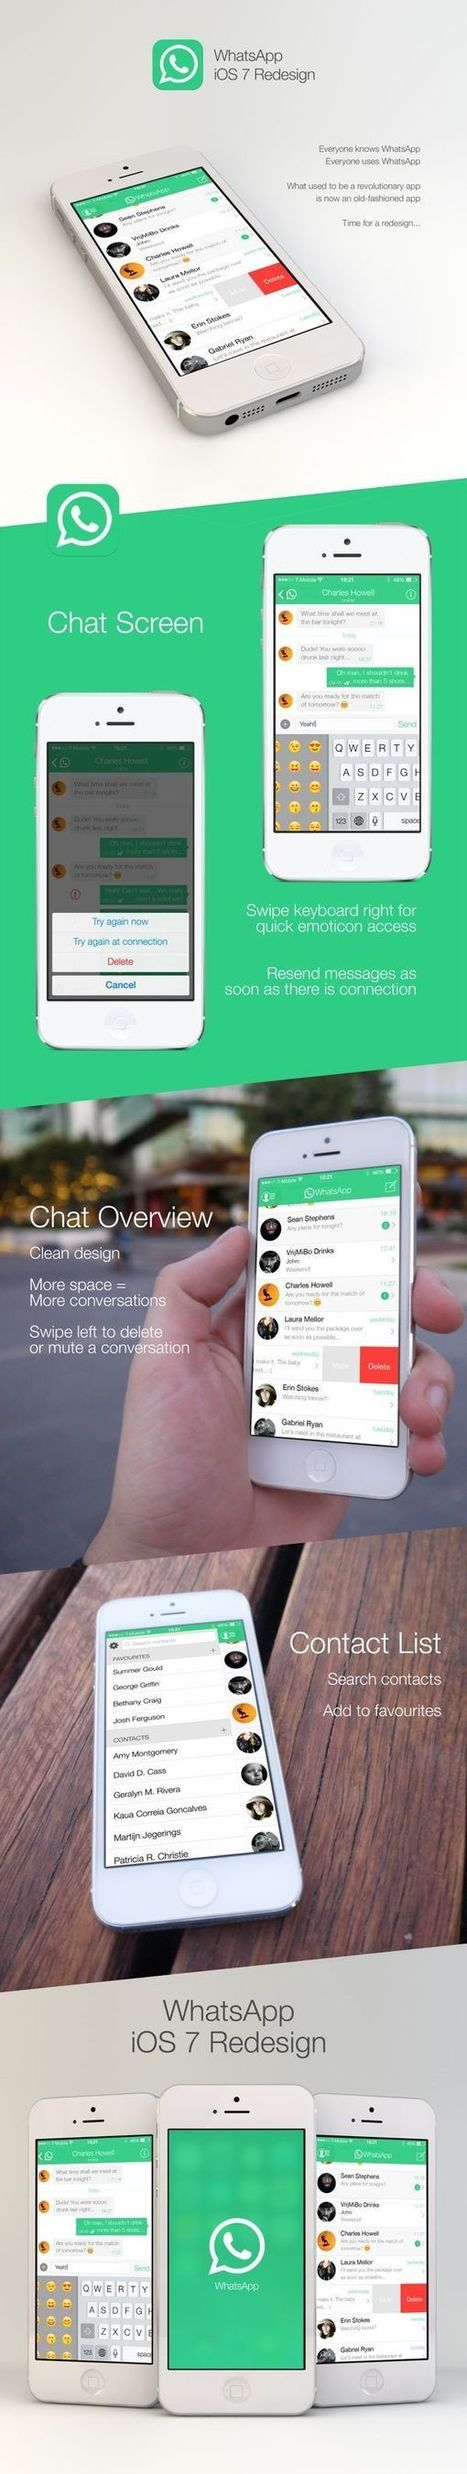 Elegant WhatsApp Design Concept for iOS 7: Sophisticated & Minimal   Smart Phone & Tablets   Scoop.it